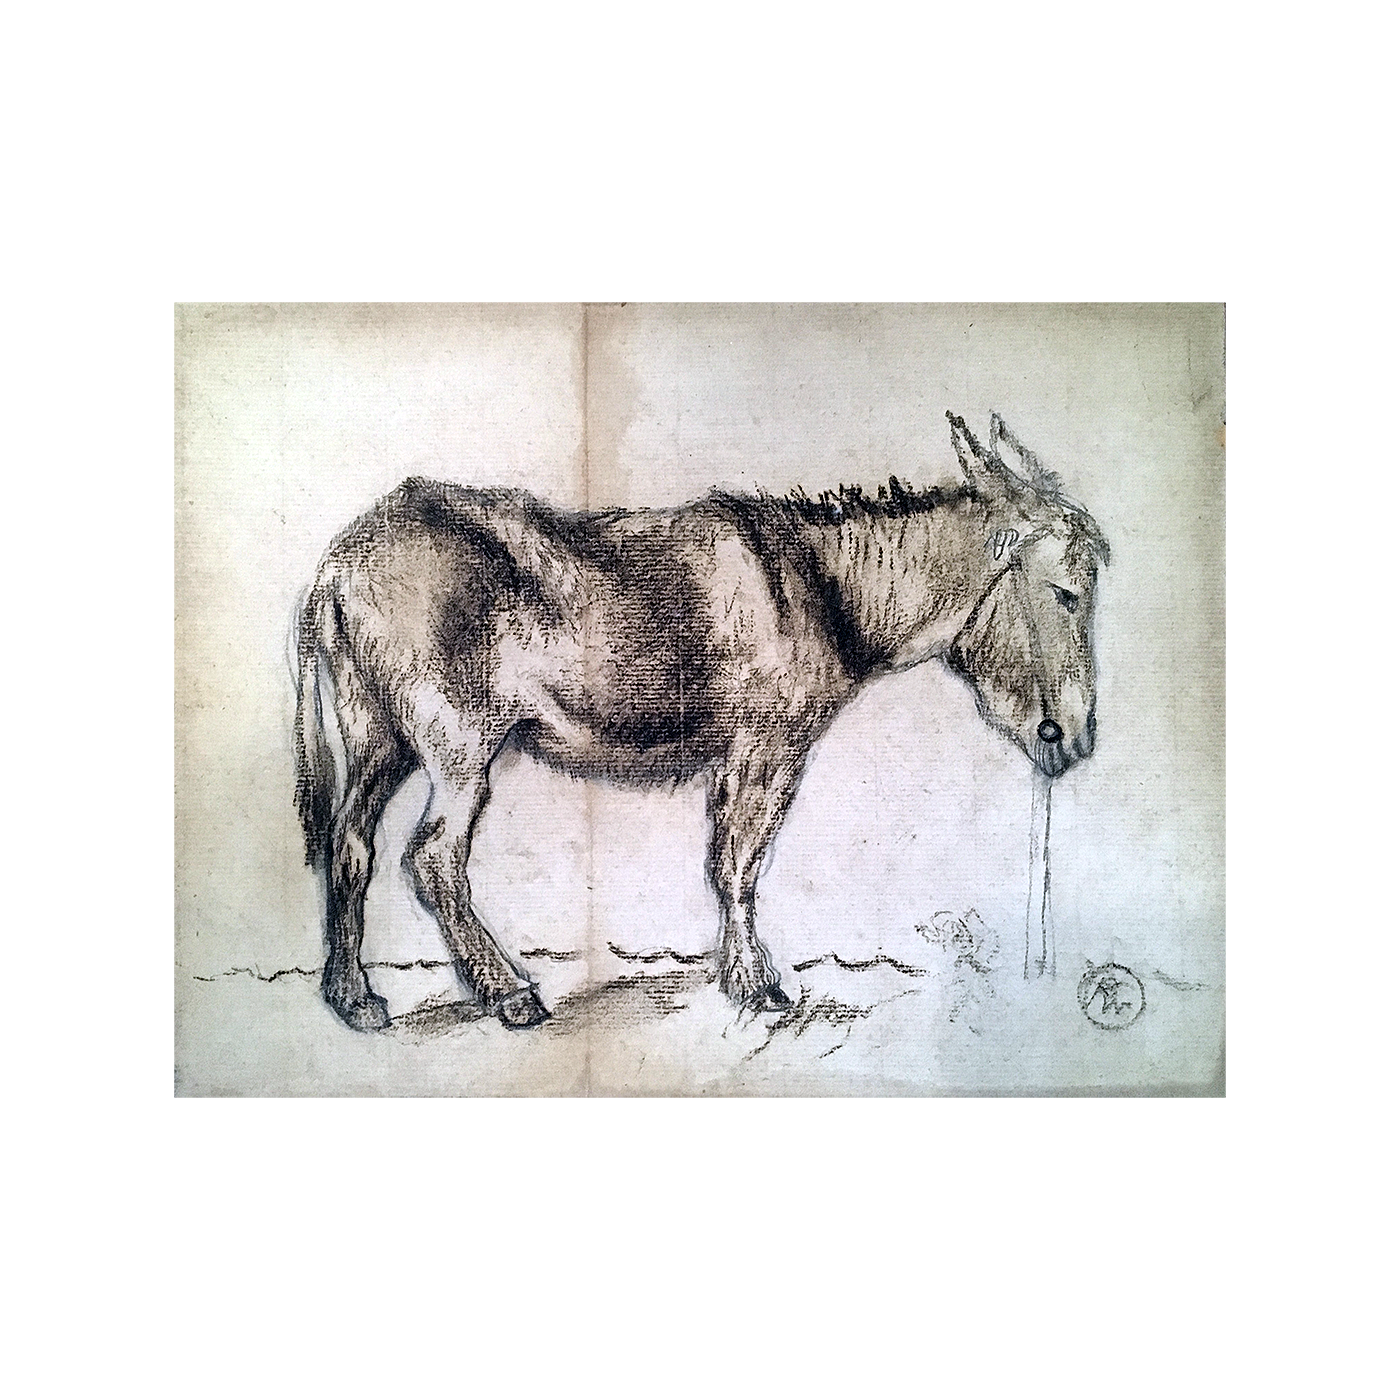 Impressionistic drawing 20th century. American or south the